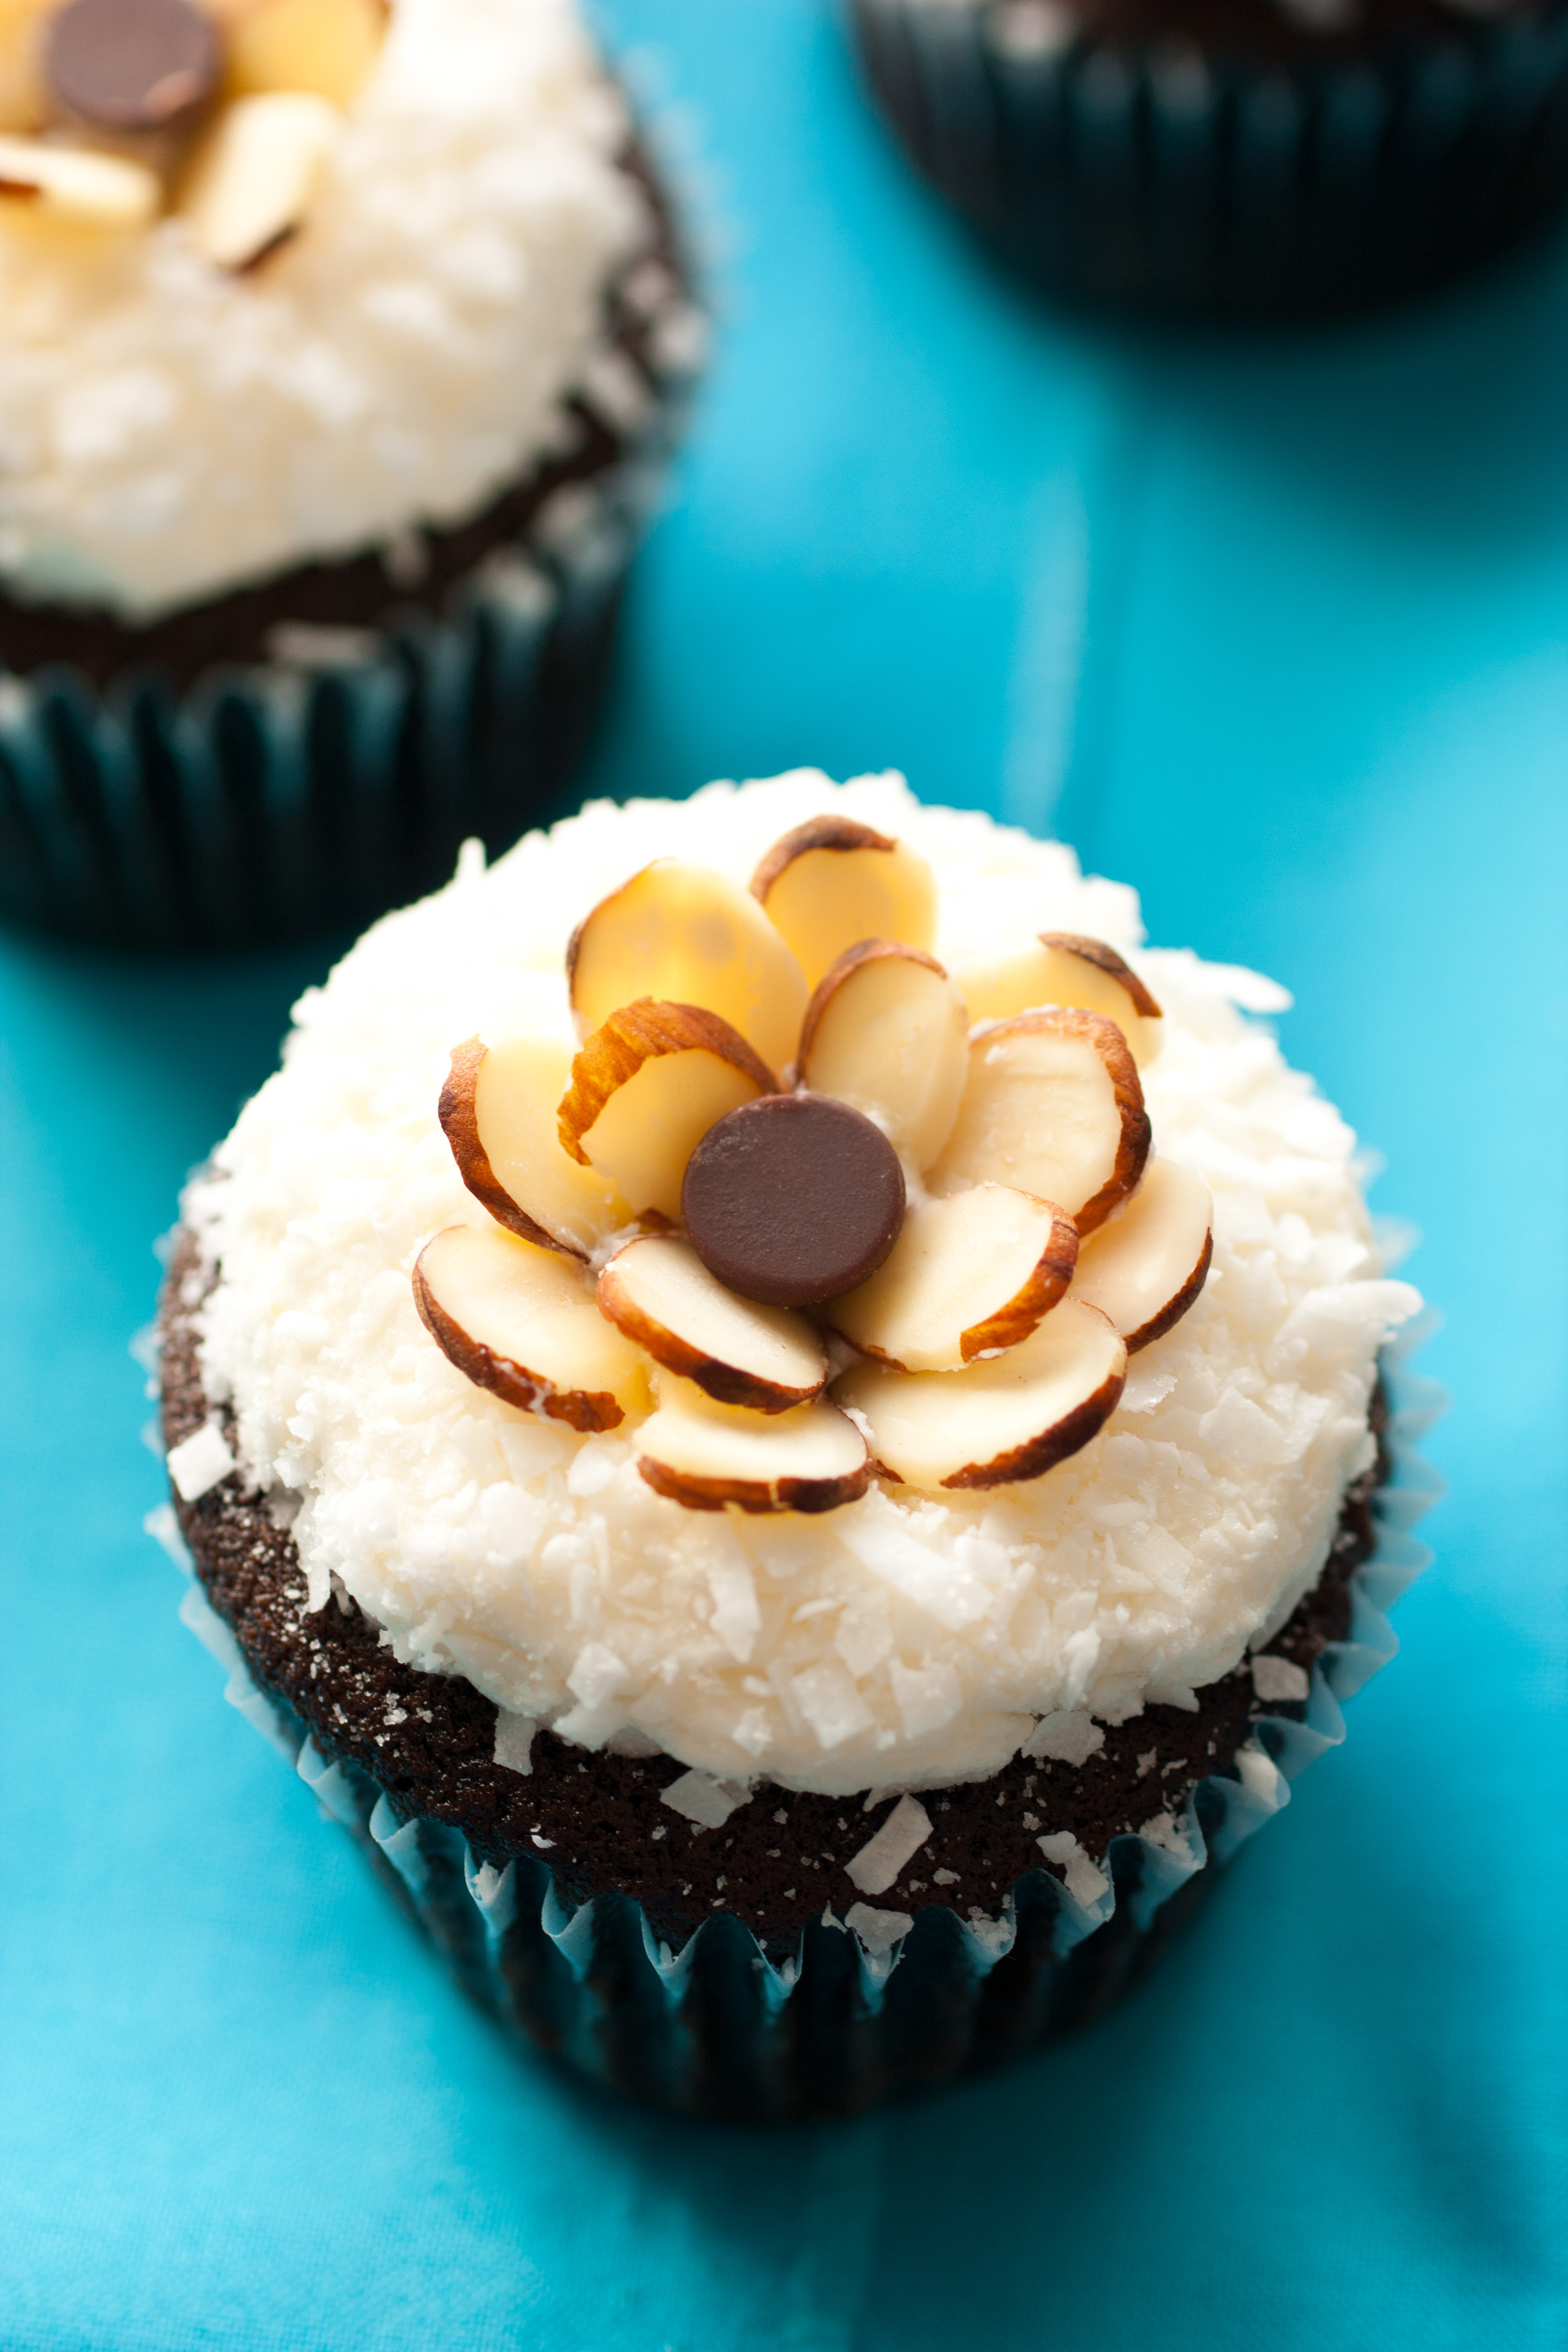 Chocolate Cupcakes with Coconut Frosting & Almonds